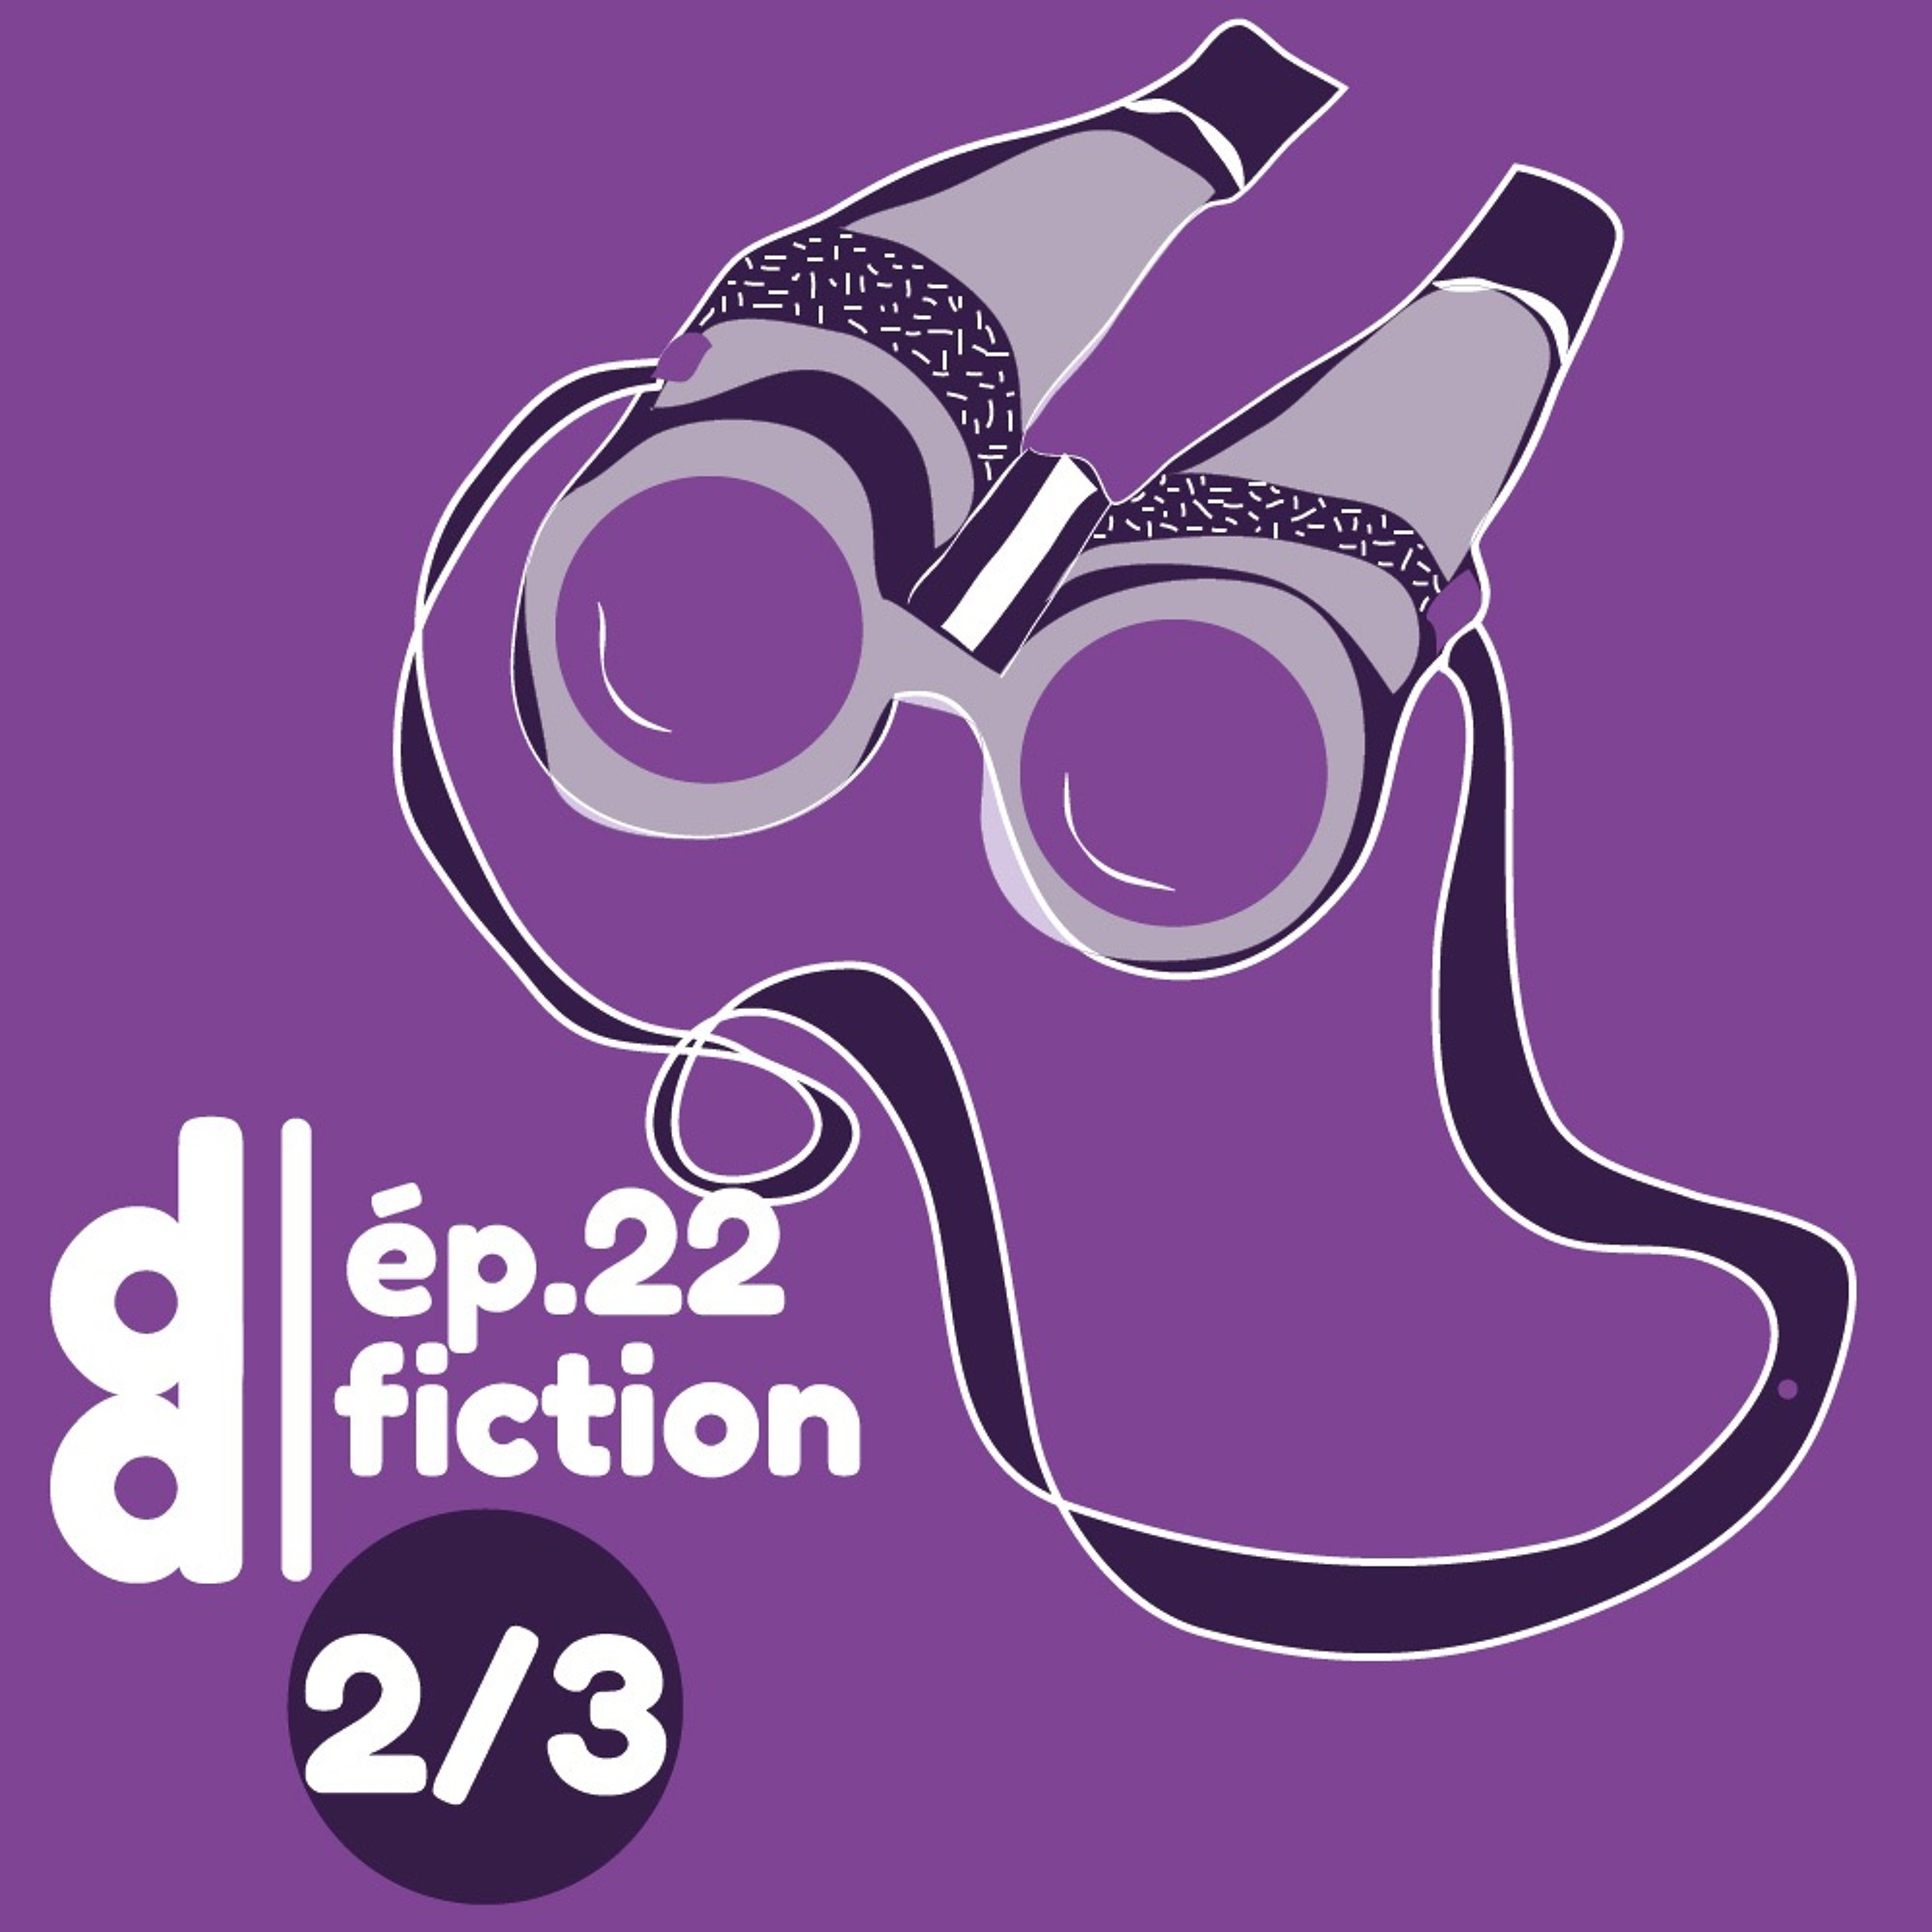 DESSIN DESSEIN // EP22 Fiction - Partie 2 : Fanny Parise, l'anthropologue a la pensée magique